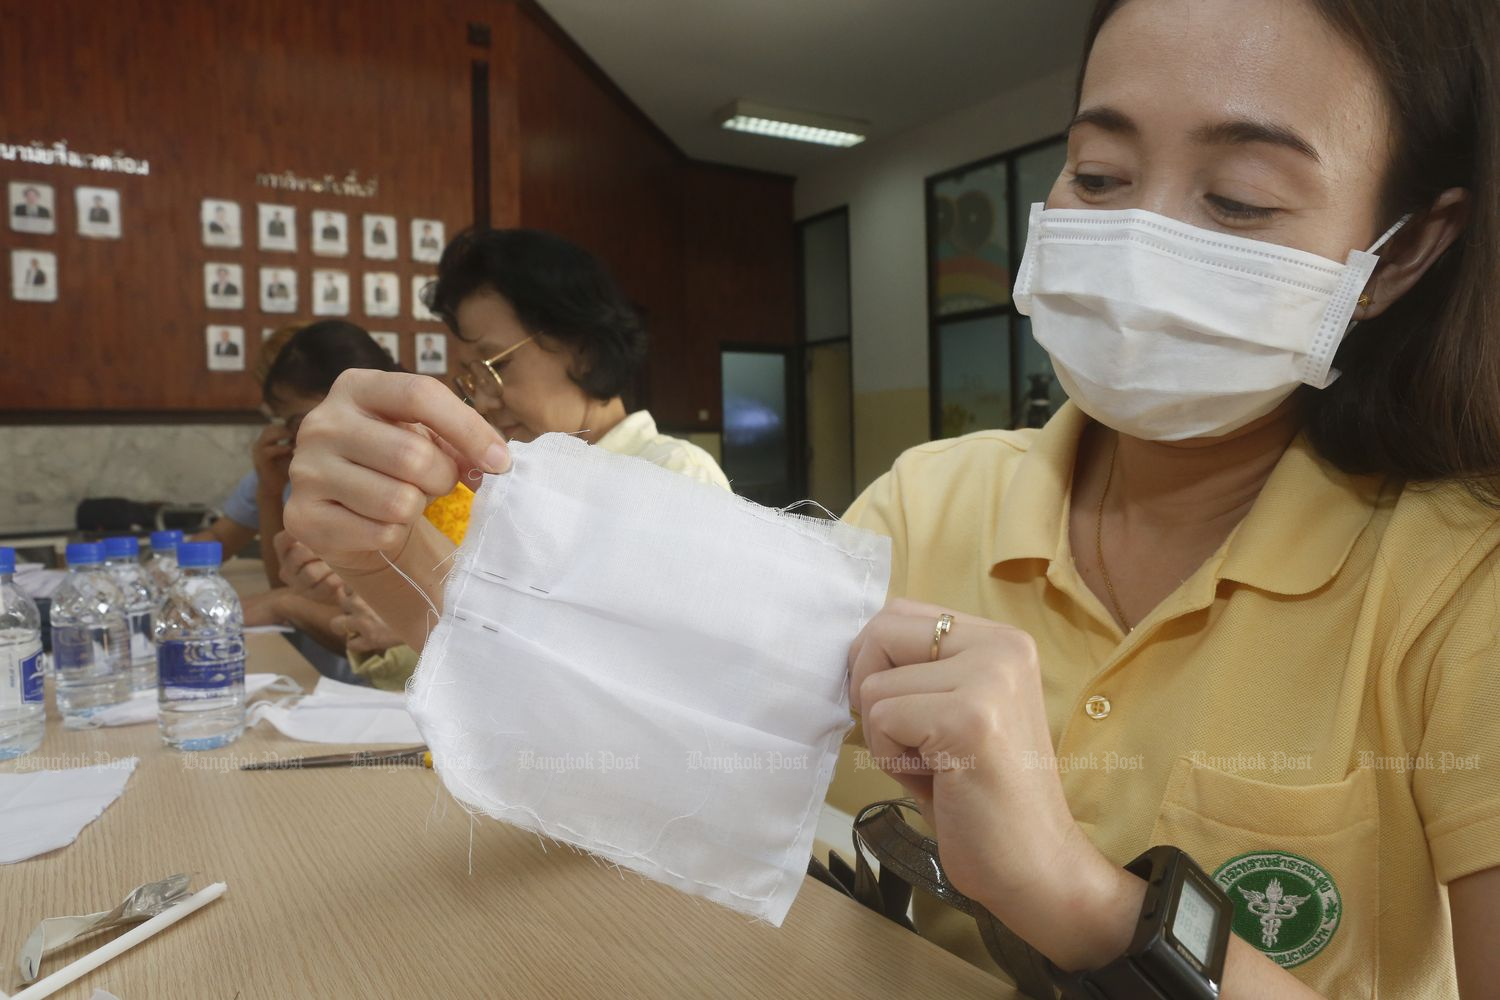 An official shows how to sew a face mask at the Public Health ministry on March 2. (Photo by Pattarapong Chatpattarasill)